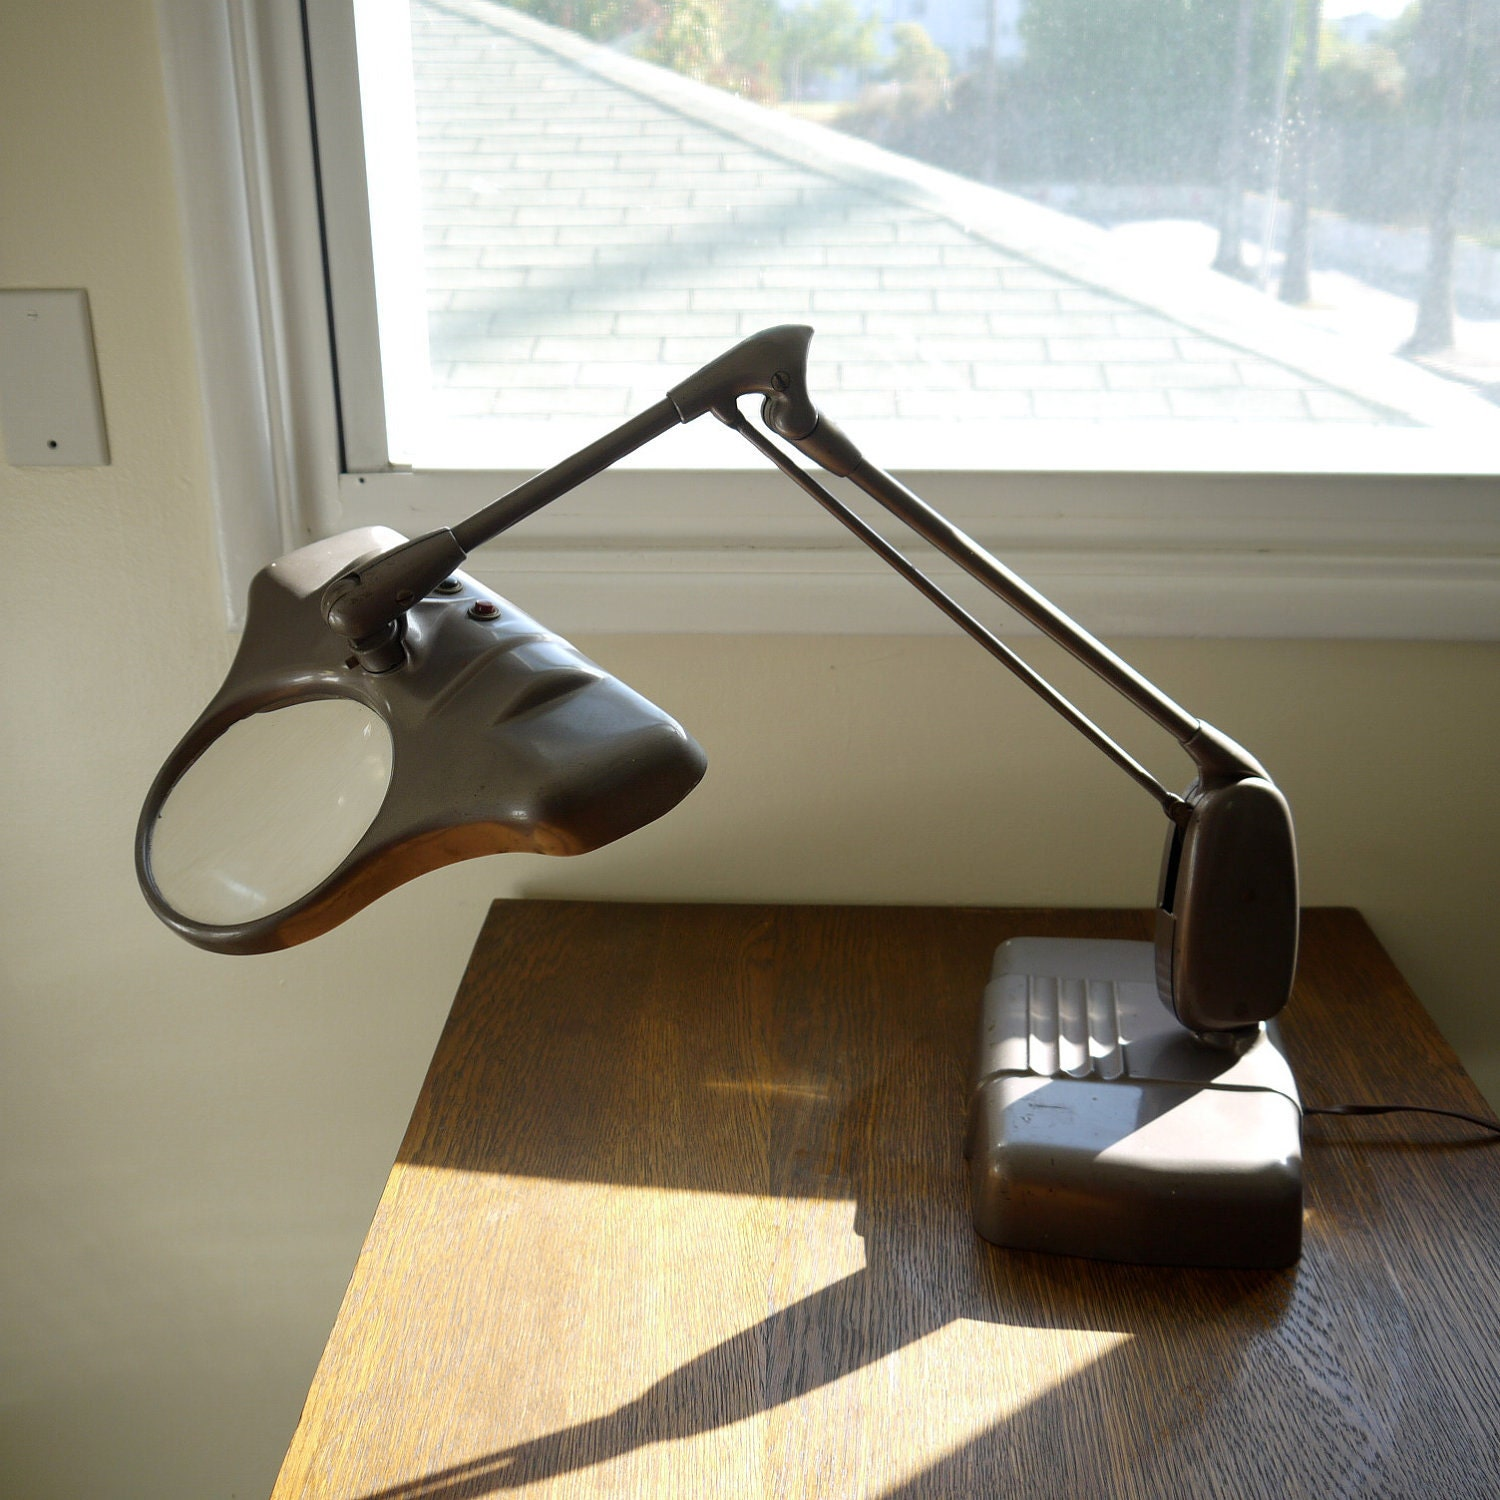 Jessica Blog Desk Lamp With Magnifying Lens – Desk Magnifying Lamp